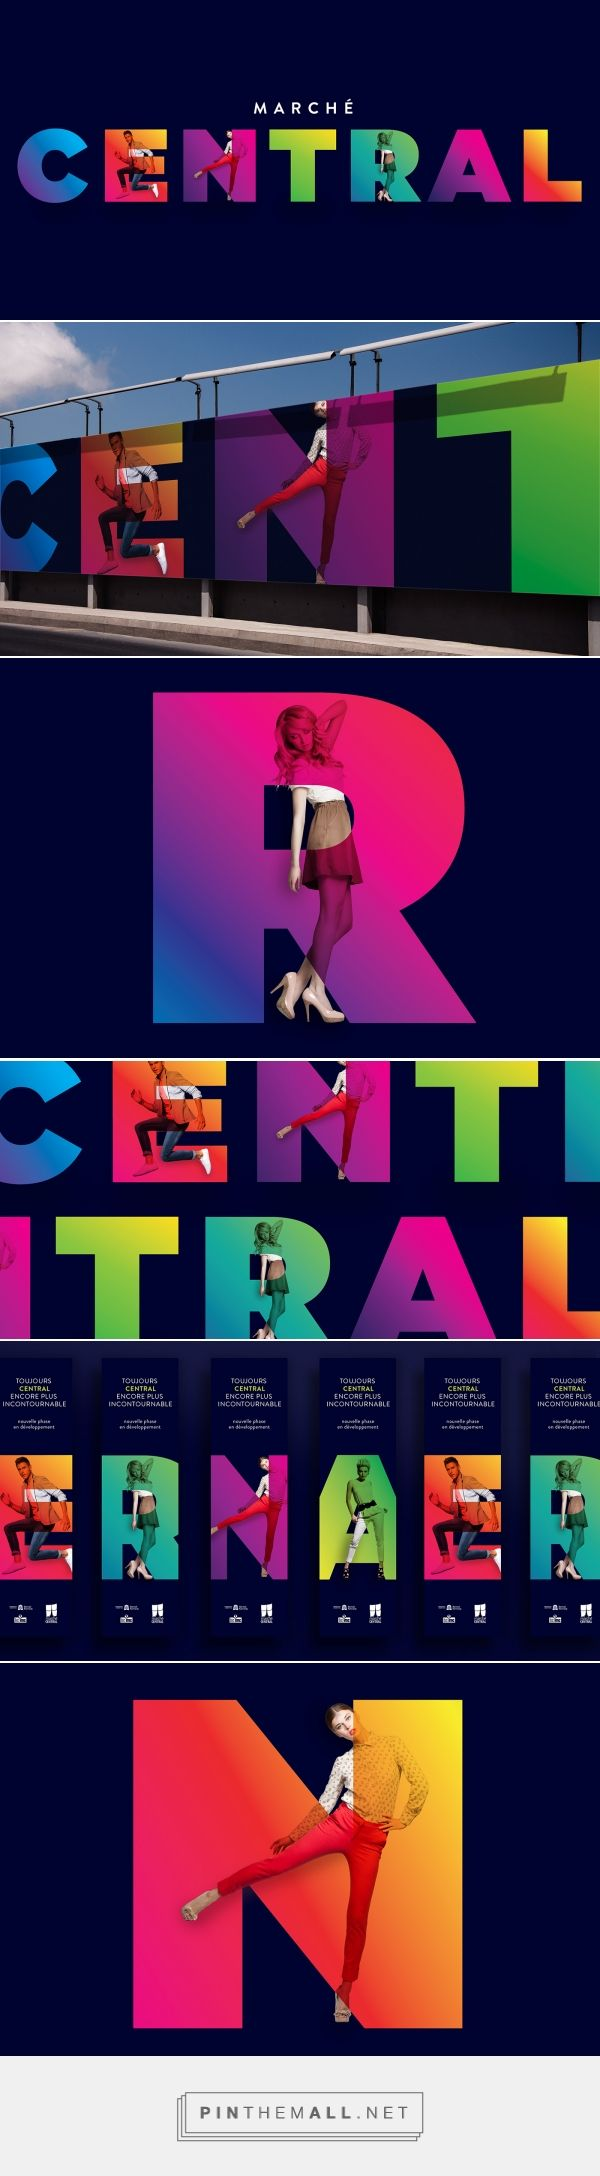 Marche Central Phase 06 by Darbi Nicole